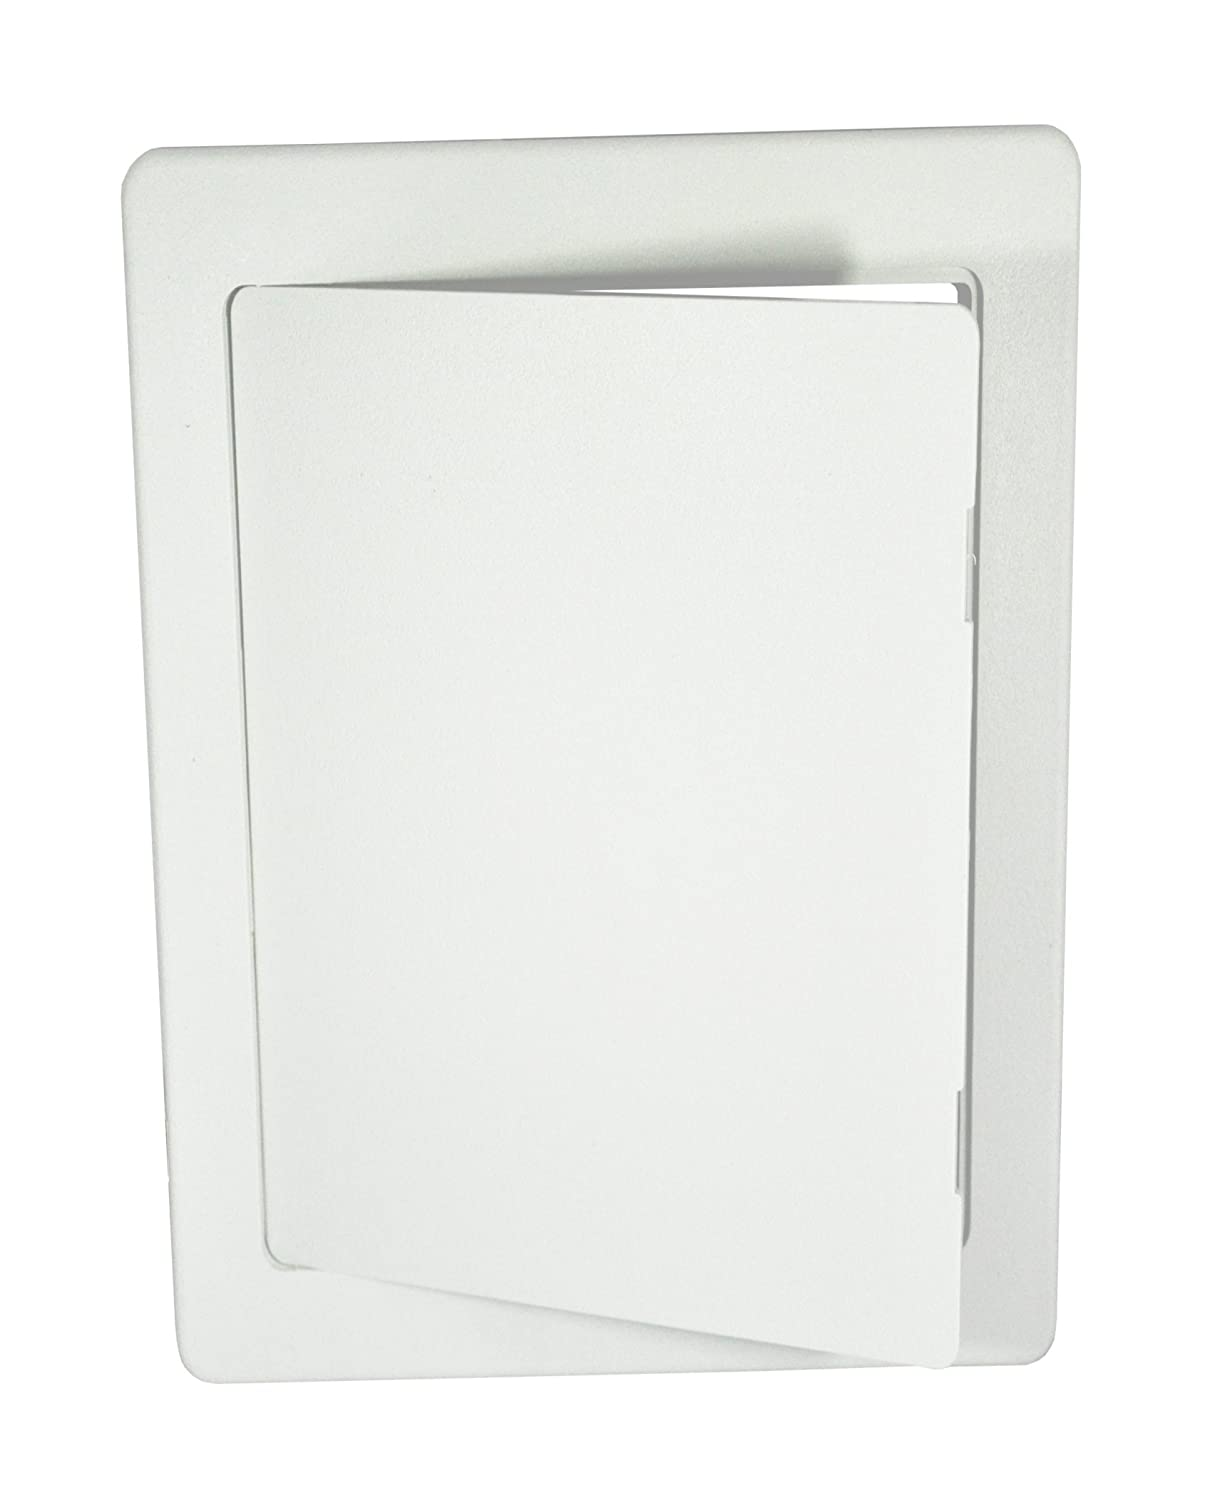 Surface Fit White ABS Plastic Access Panel / Inpsection Hatch 150mm x 100mm (6\' x 4\') - Hide: taps, valves, wiring, meters etc.... Hardware Master